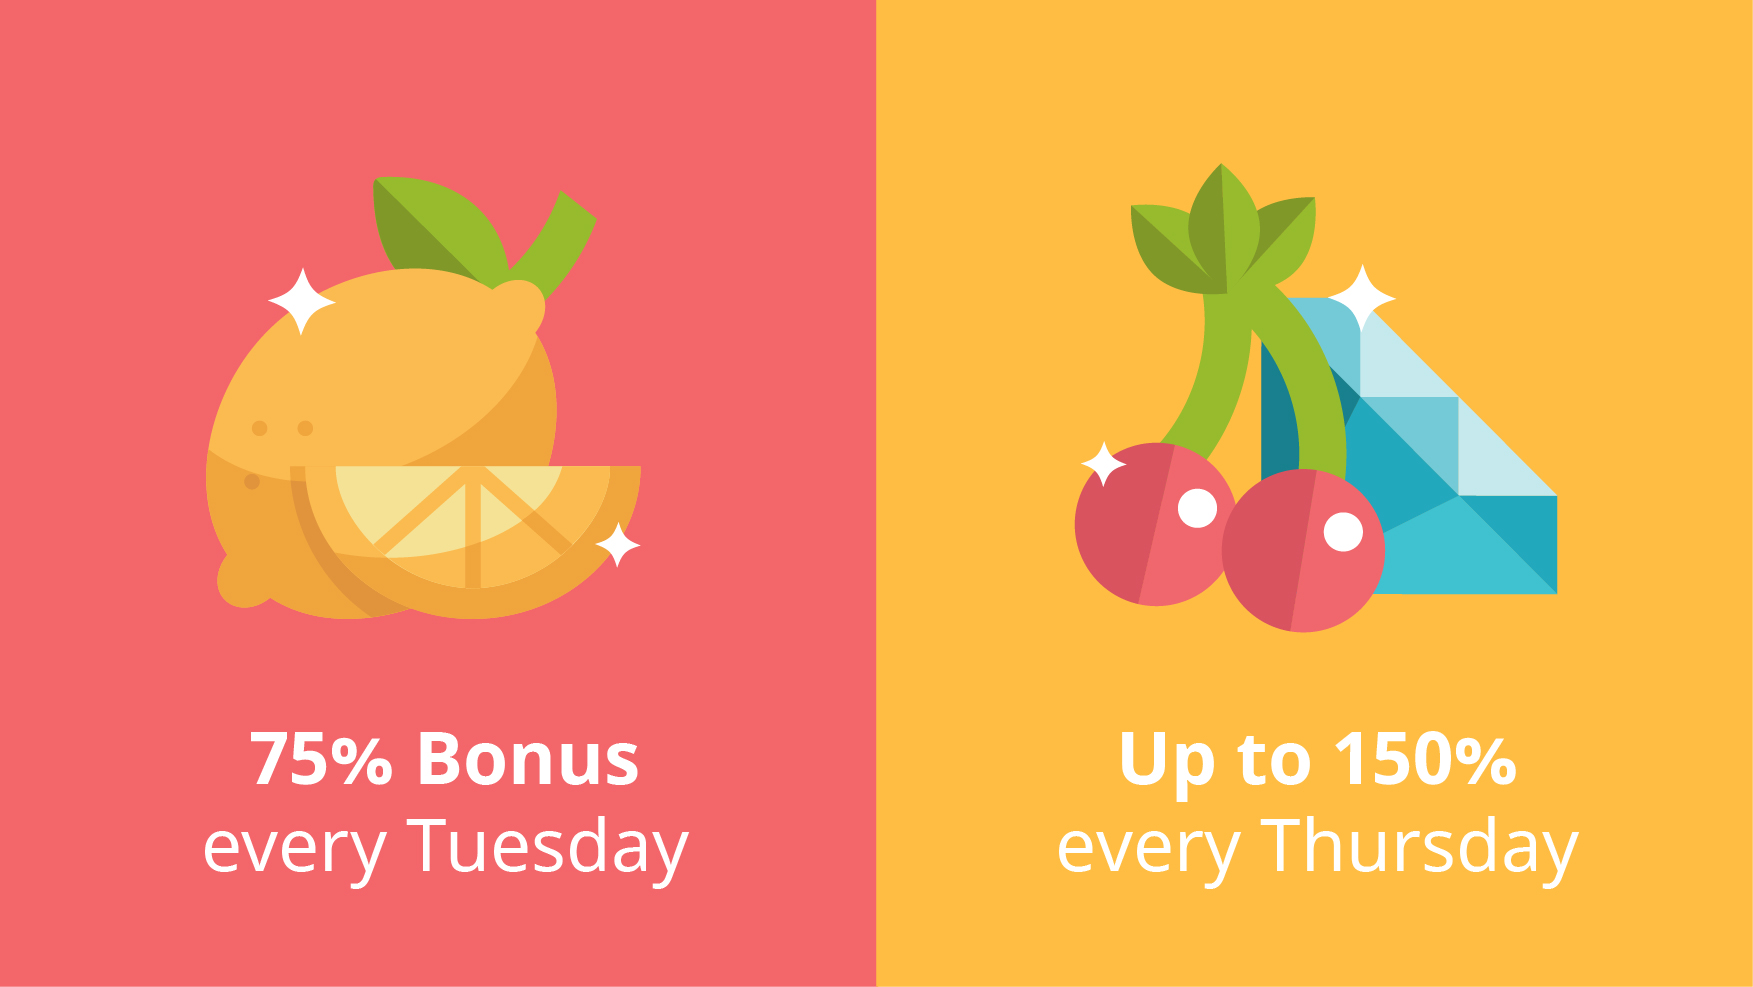 Weekly Cash Bonuses